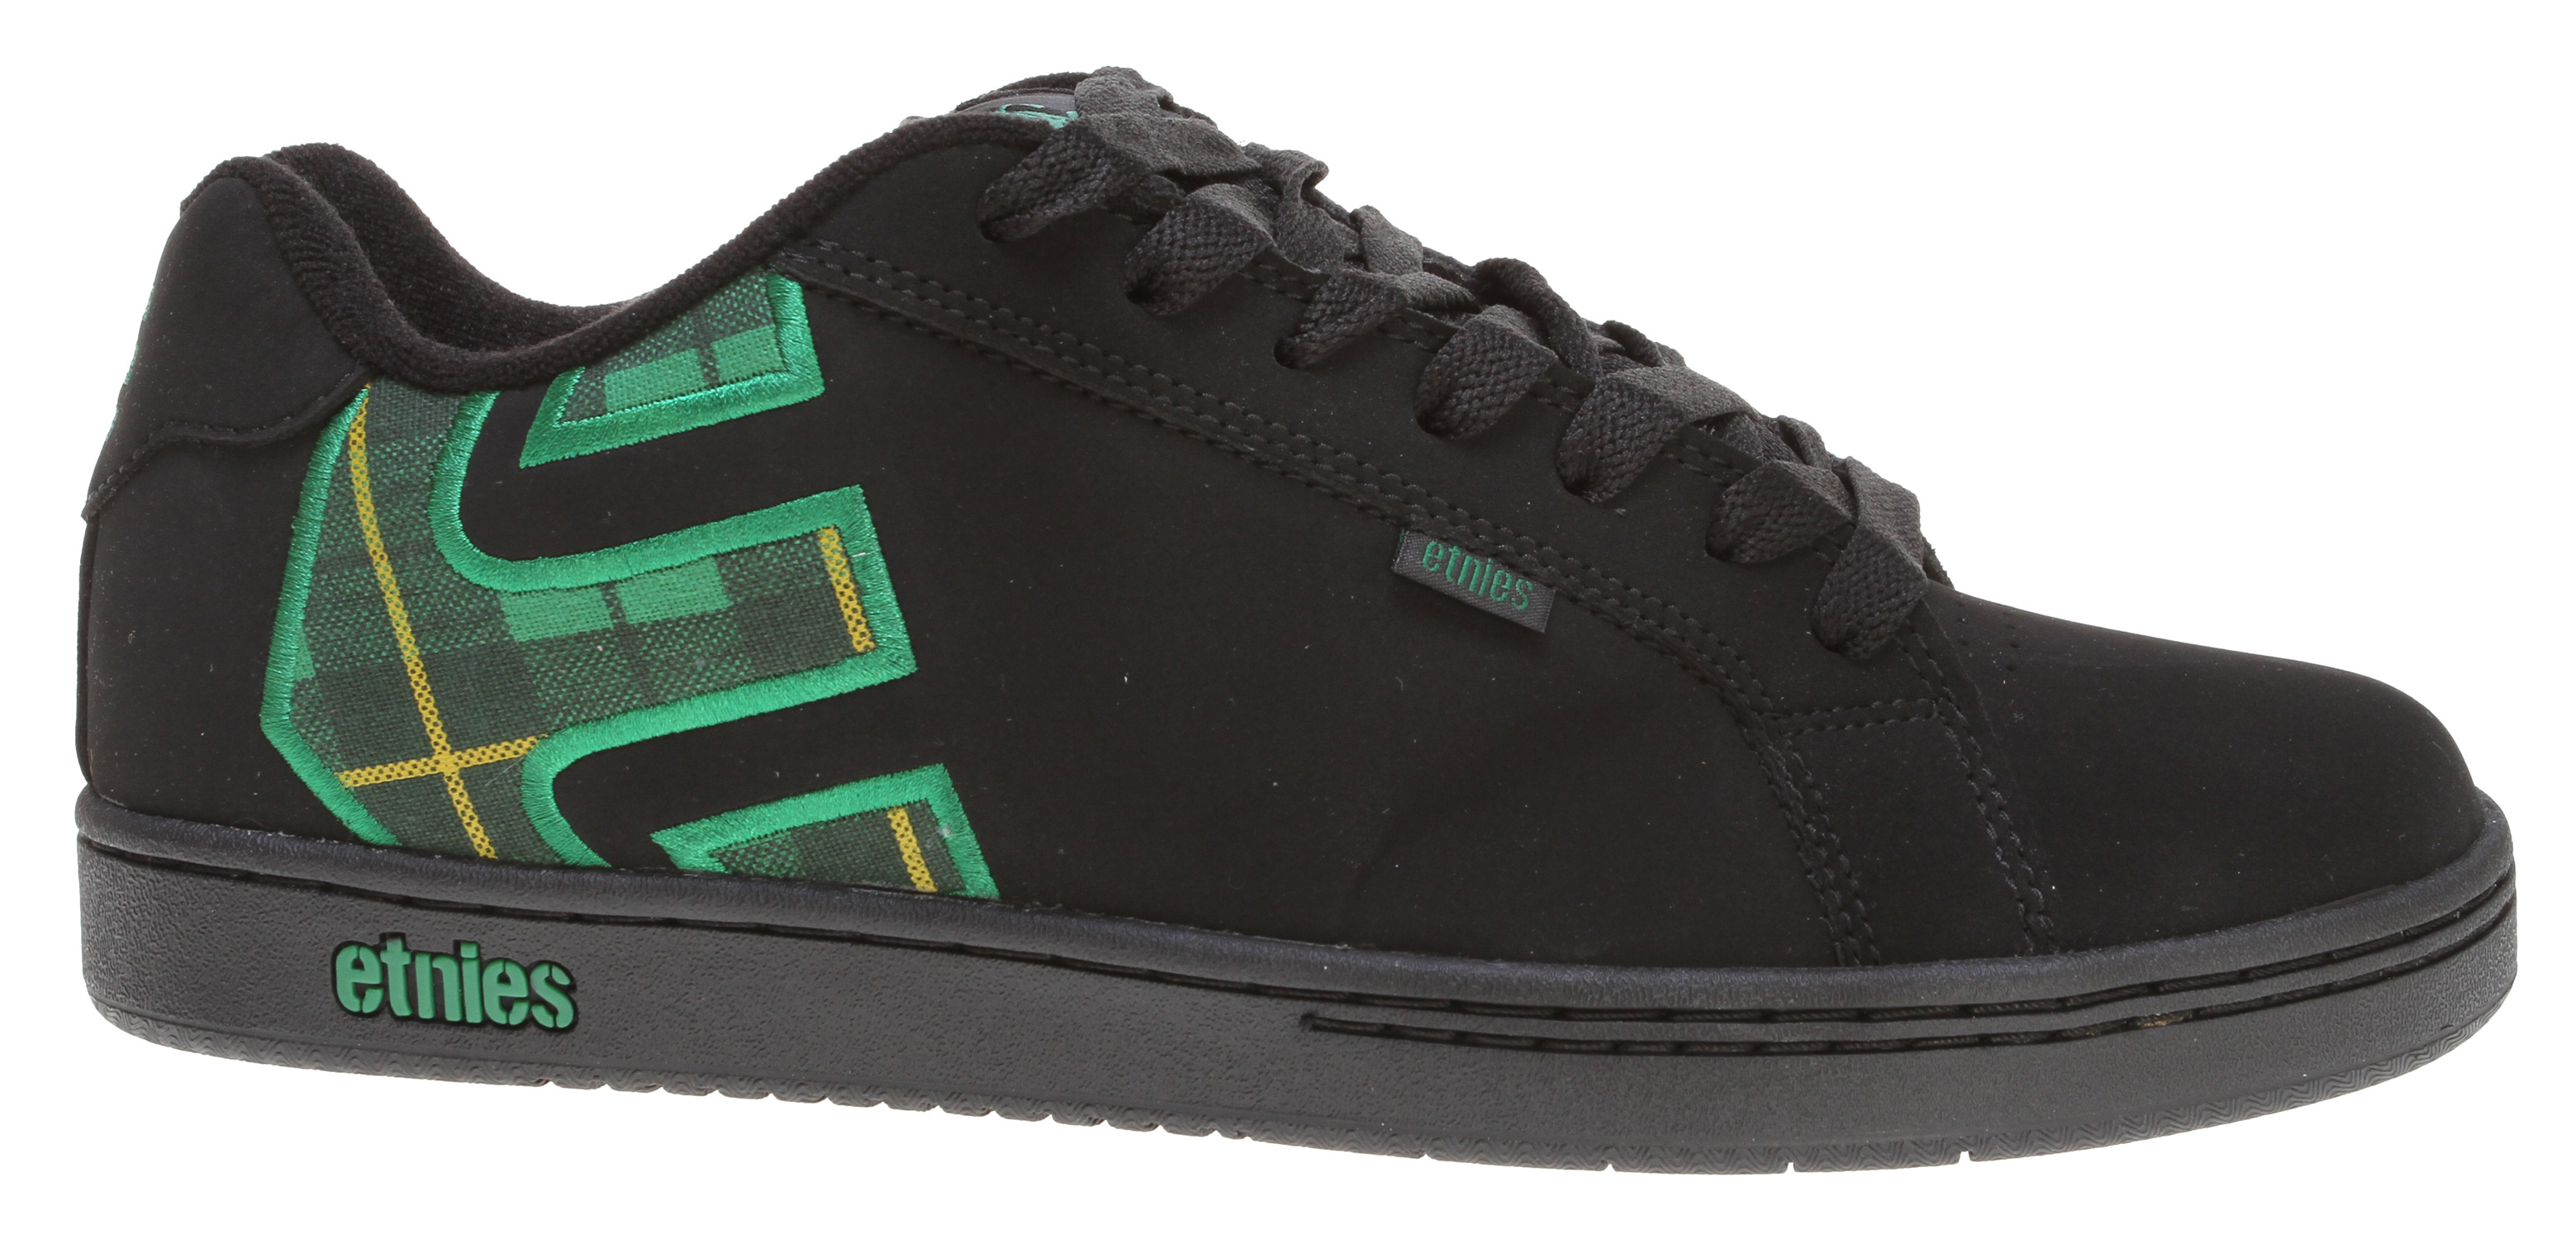 Skateboard Etnies Fader Scruffy Wallace Skate Shoes - $51.95